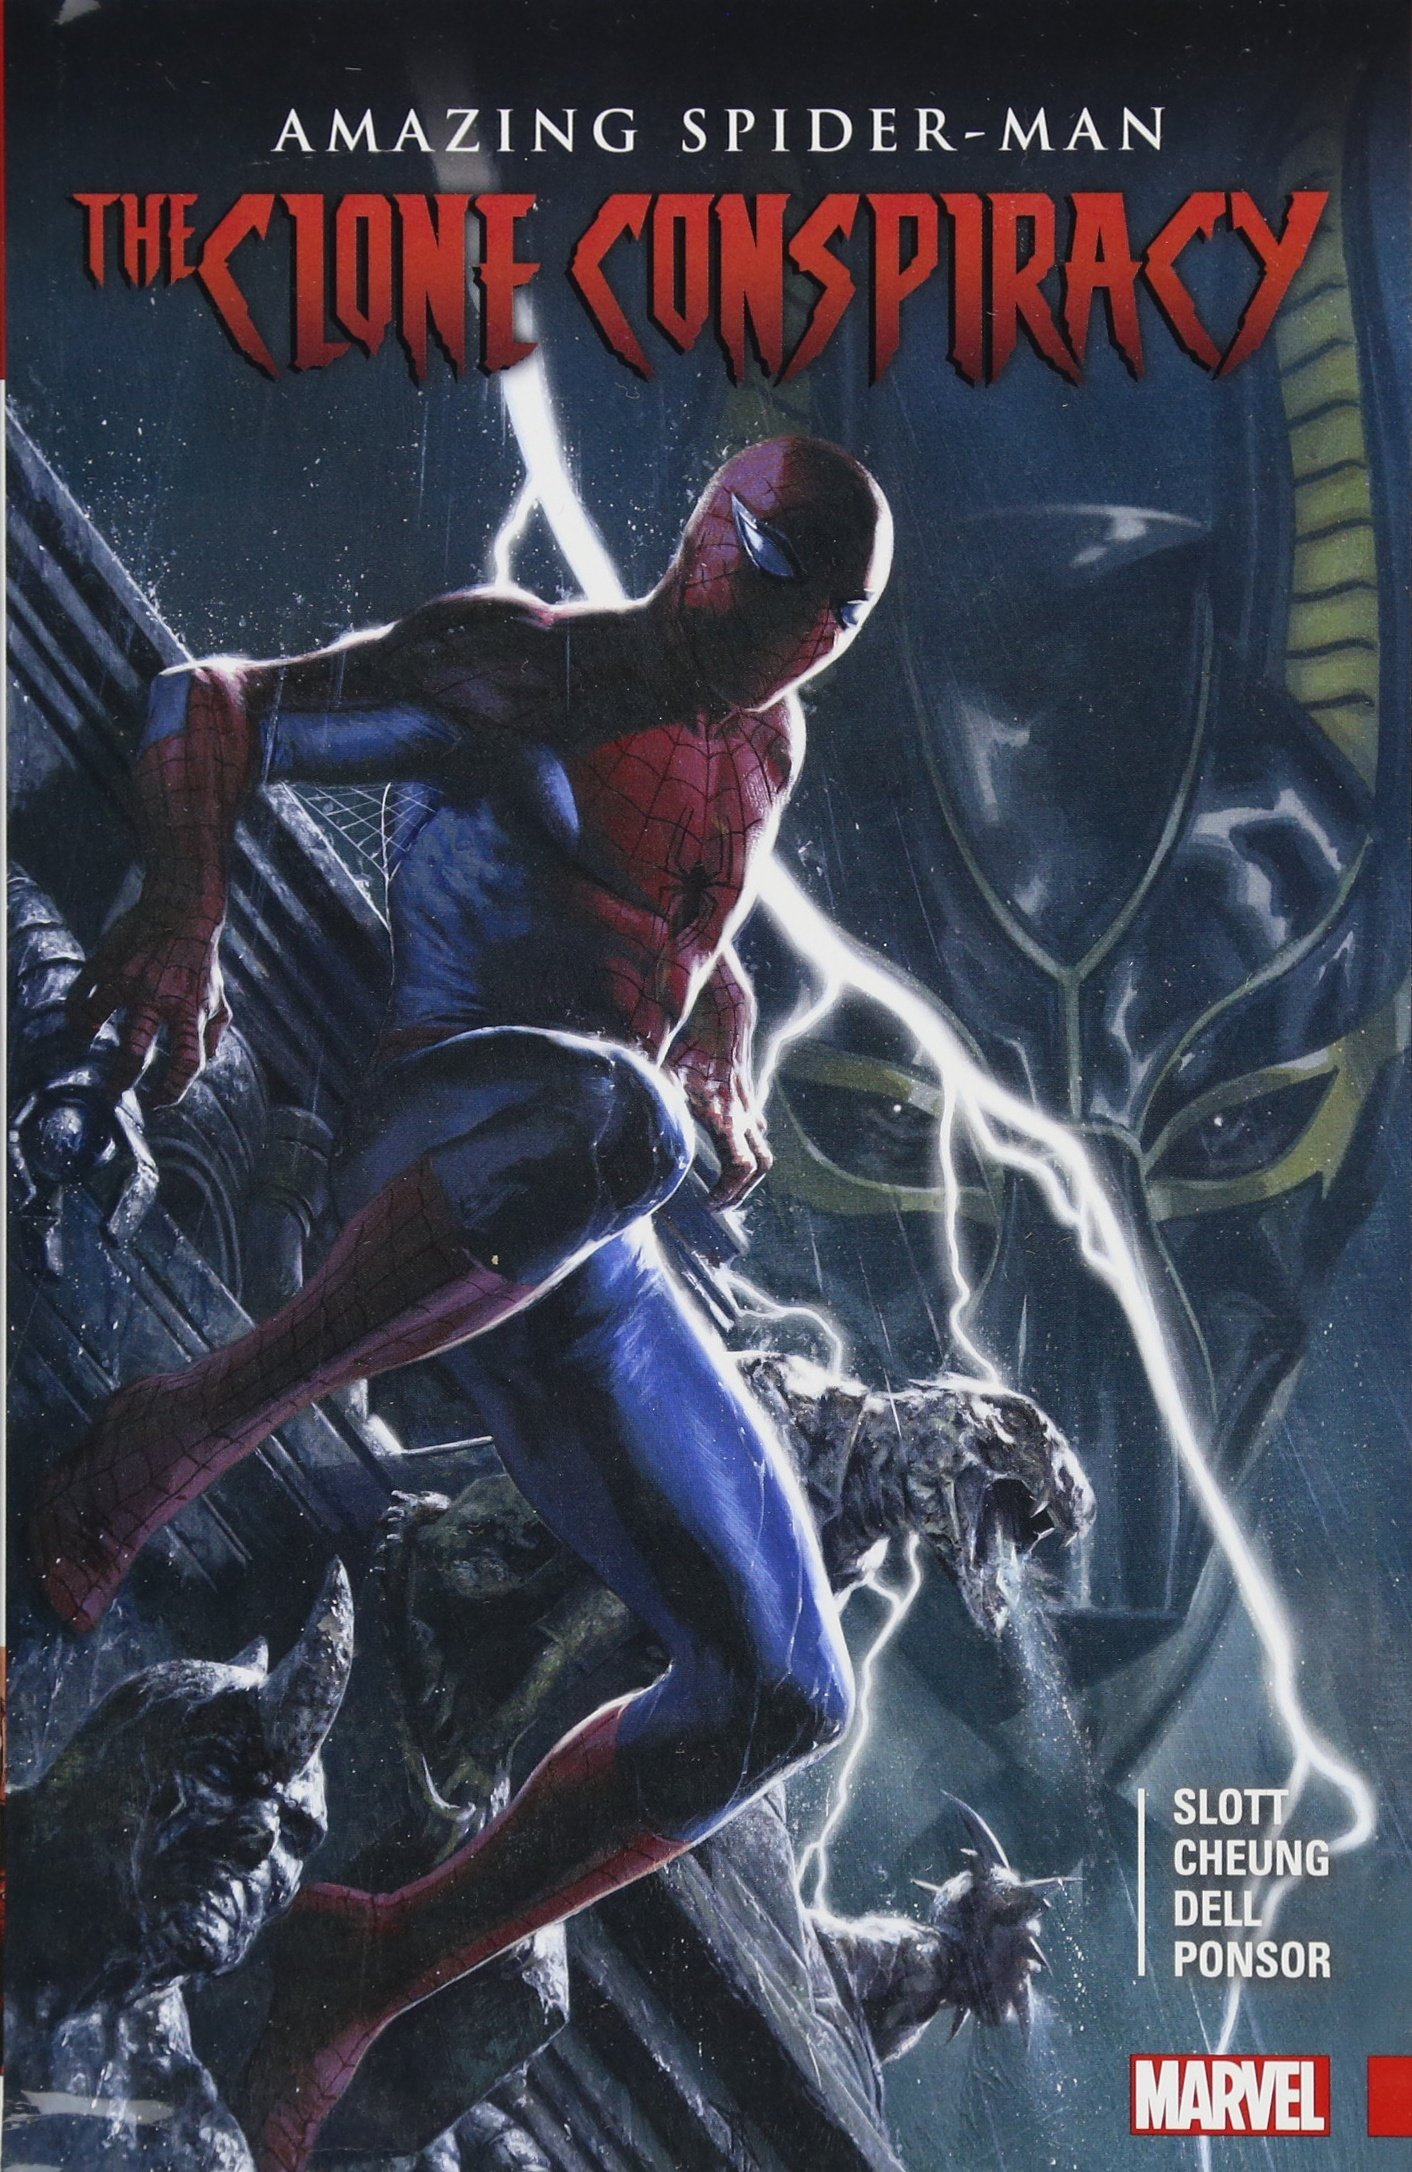 Download Amazing Spider-Man: The Clone Conspiracy PDF